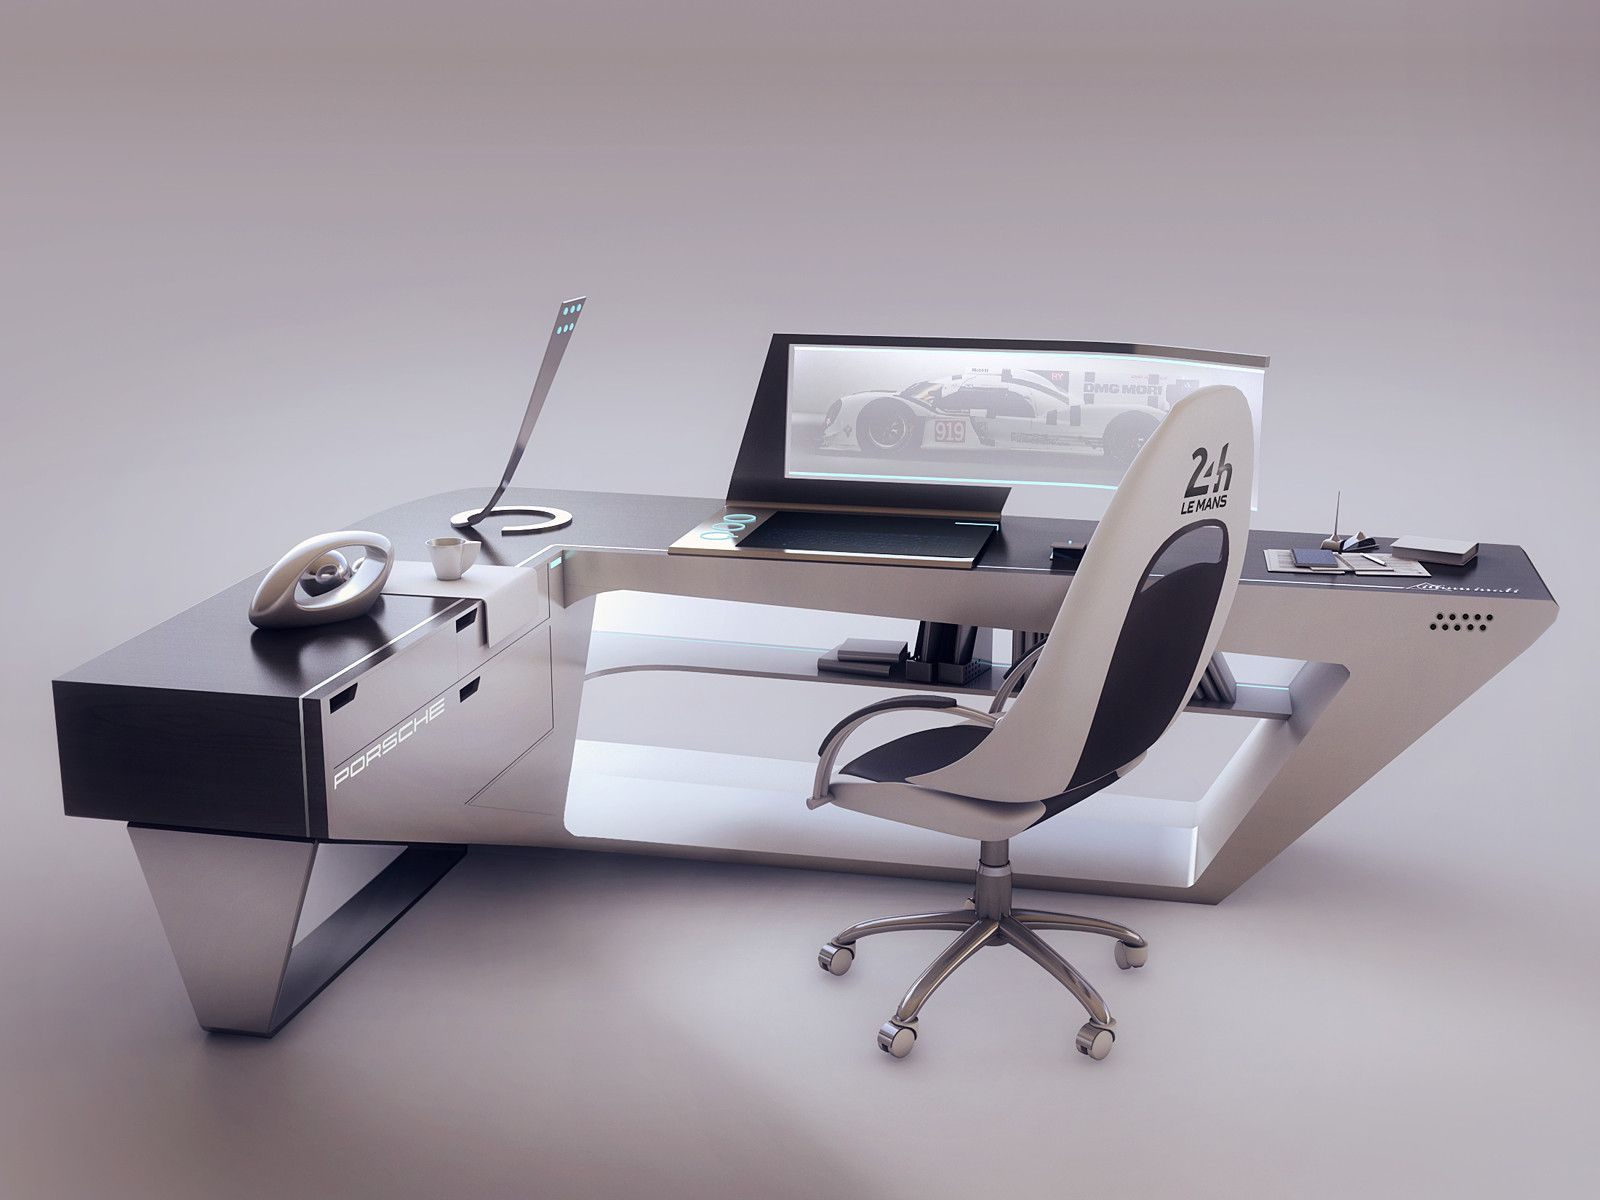 ArtStation - de bureau design moderne, Encho Enchev | Reception 接待 ...